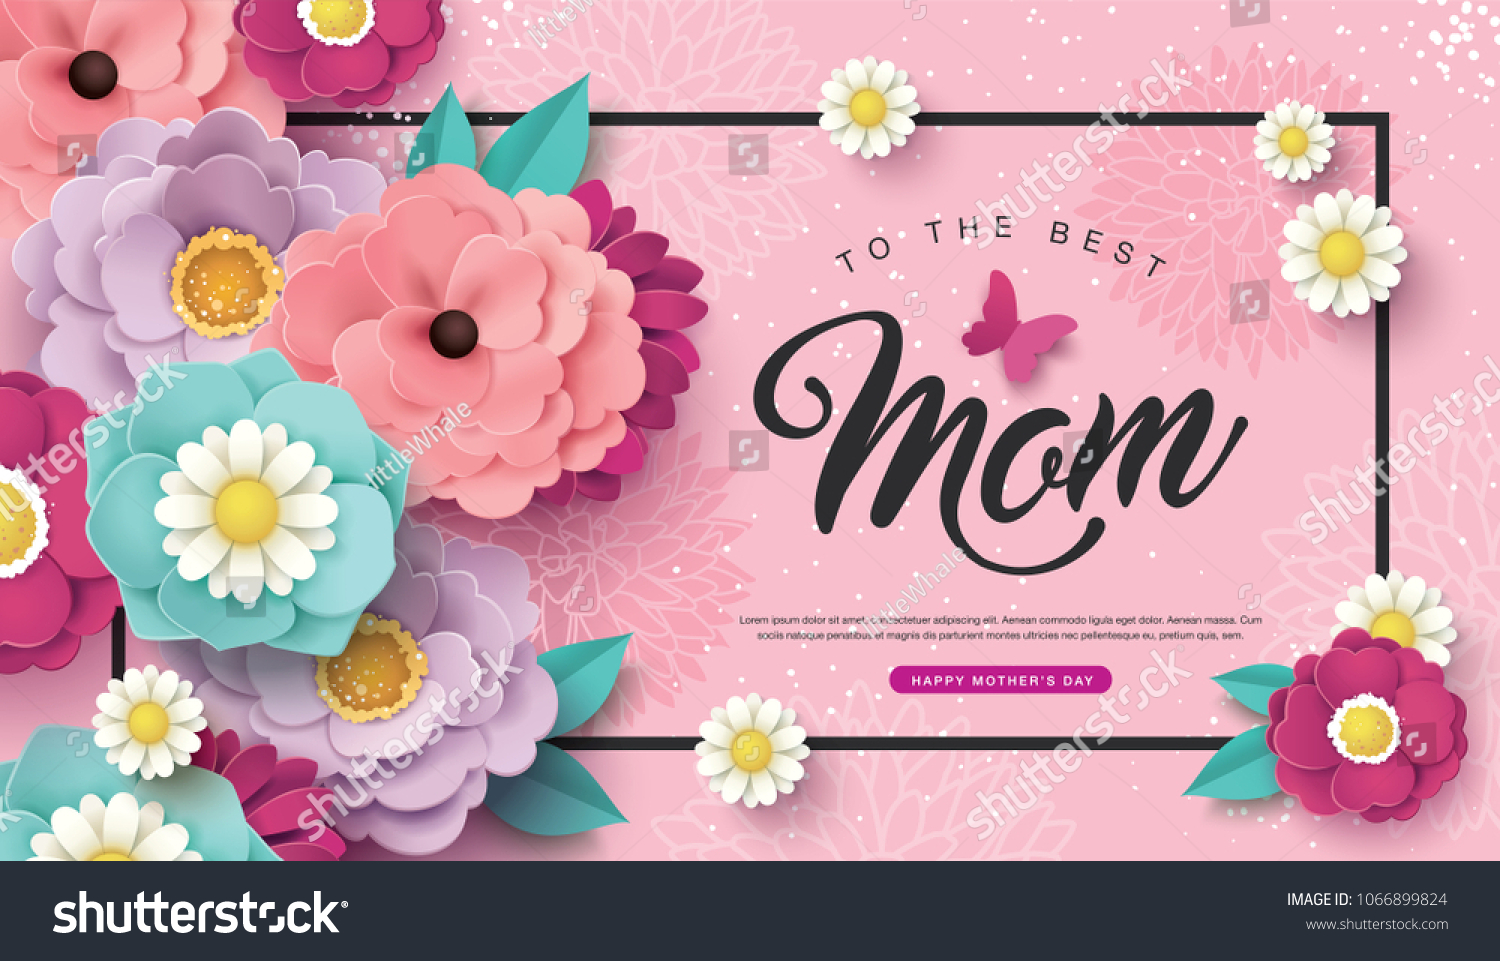 Enjoyable Happy Mothers Day Greeting Card Design Stock Vector Royalty Free Birthday Cards Printable Opercafe Filternl